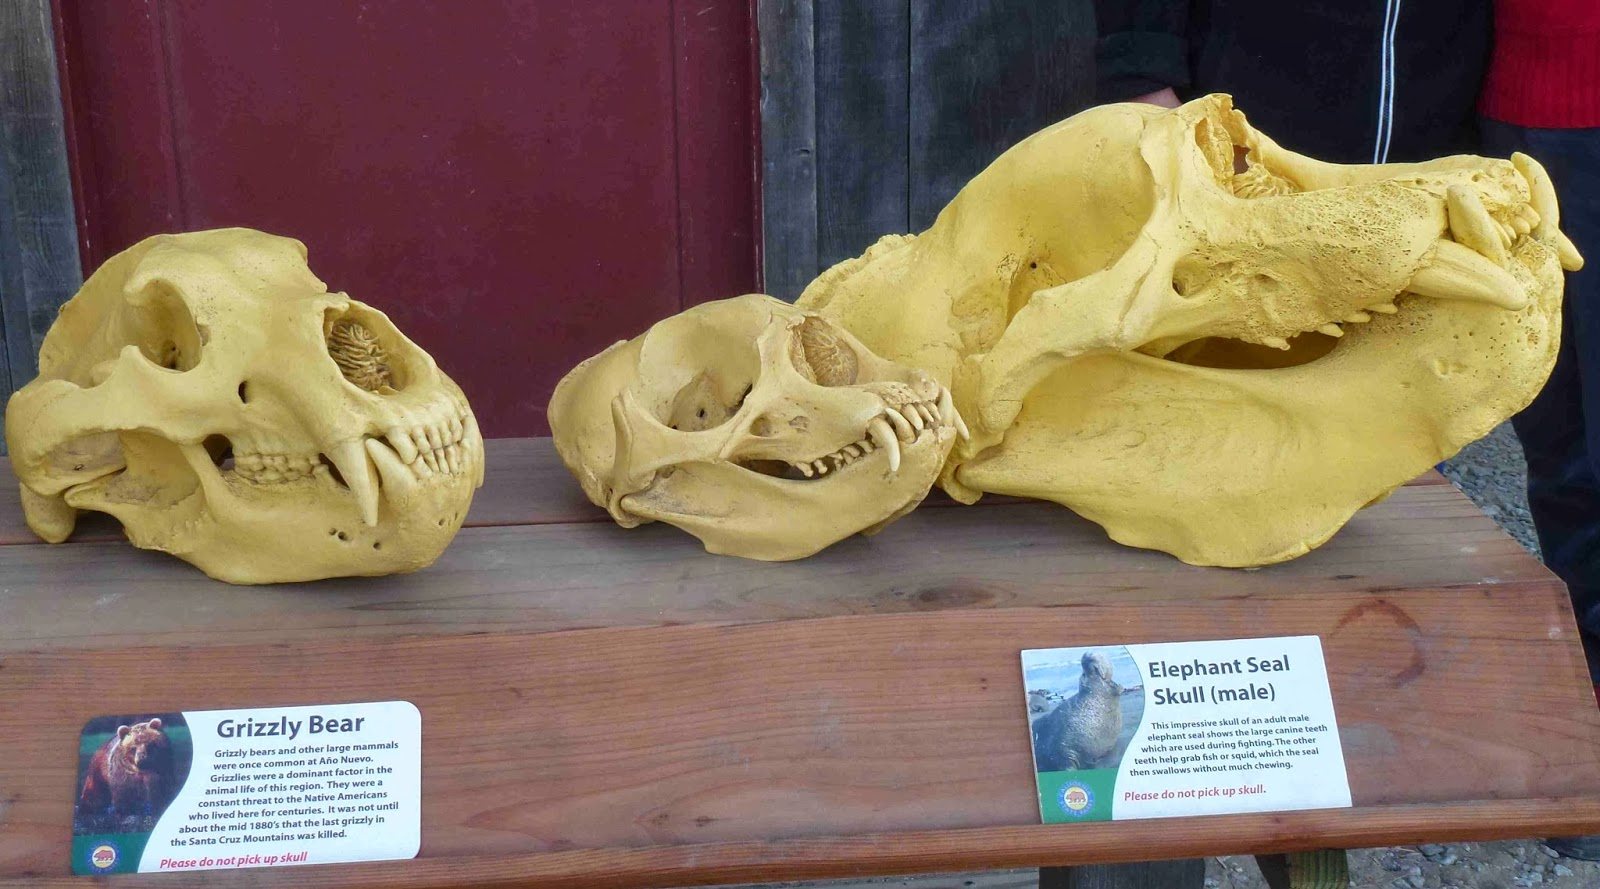 Grizzly skull is significantly larger than the female elephant seal's but the male elephant seal skull is more than twice as large.